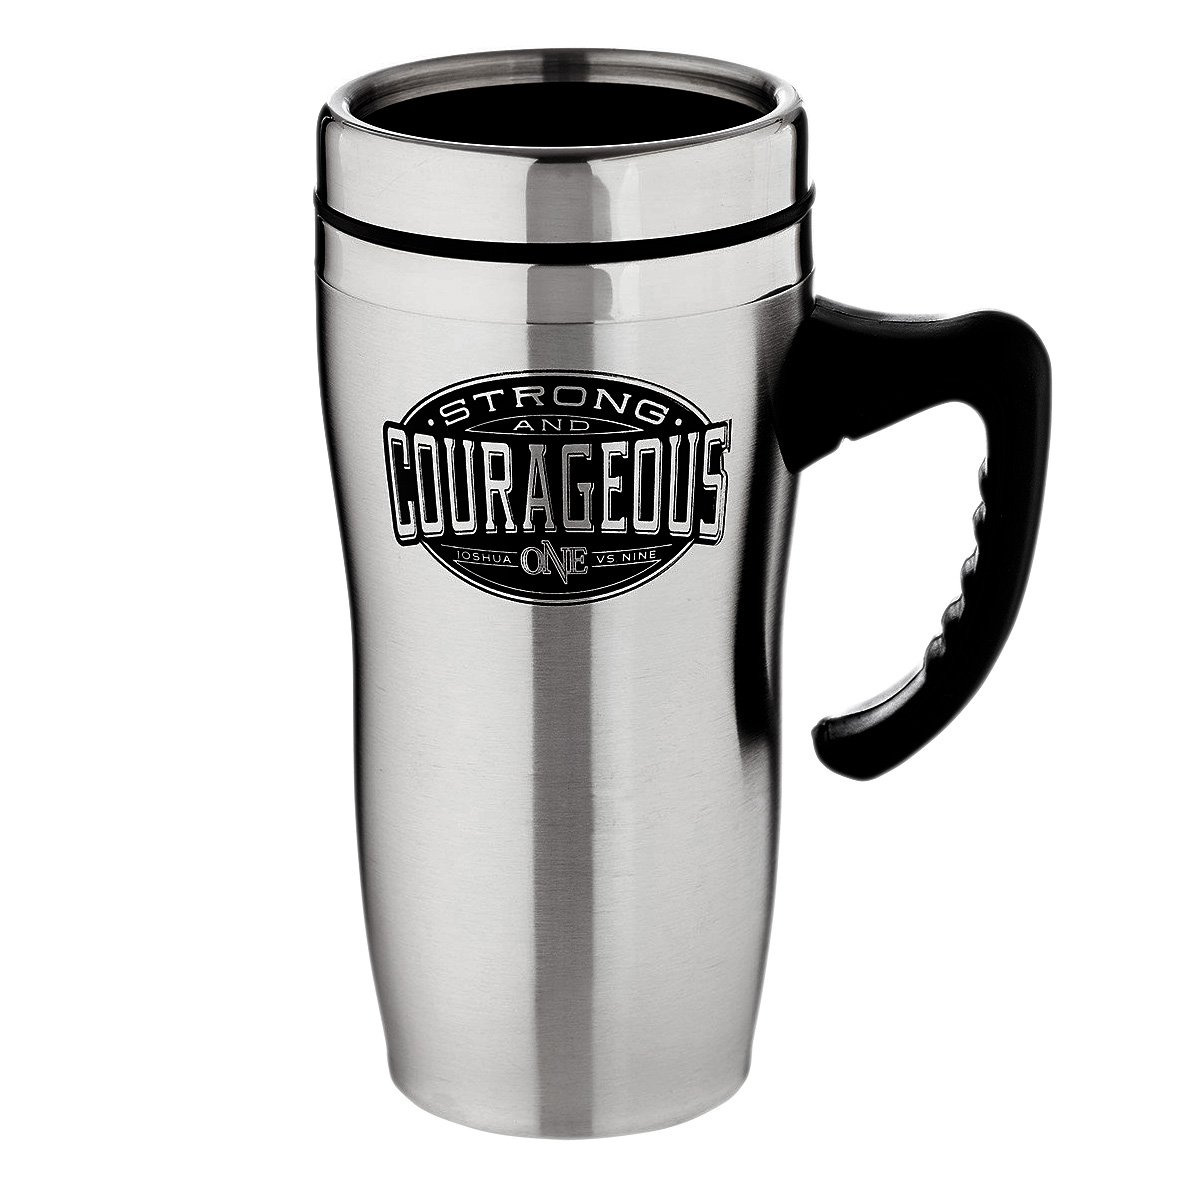 Be Strong and Courageous Collection Stainless Steel Travel Mug w/Handle - Joshua 1:9